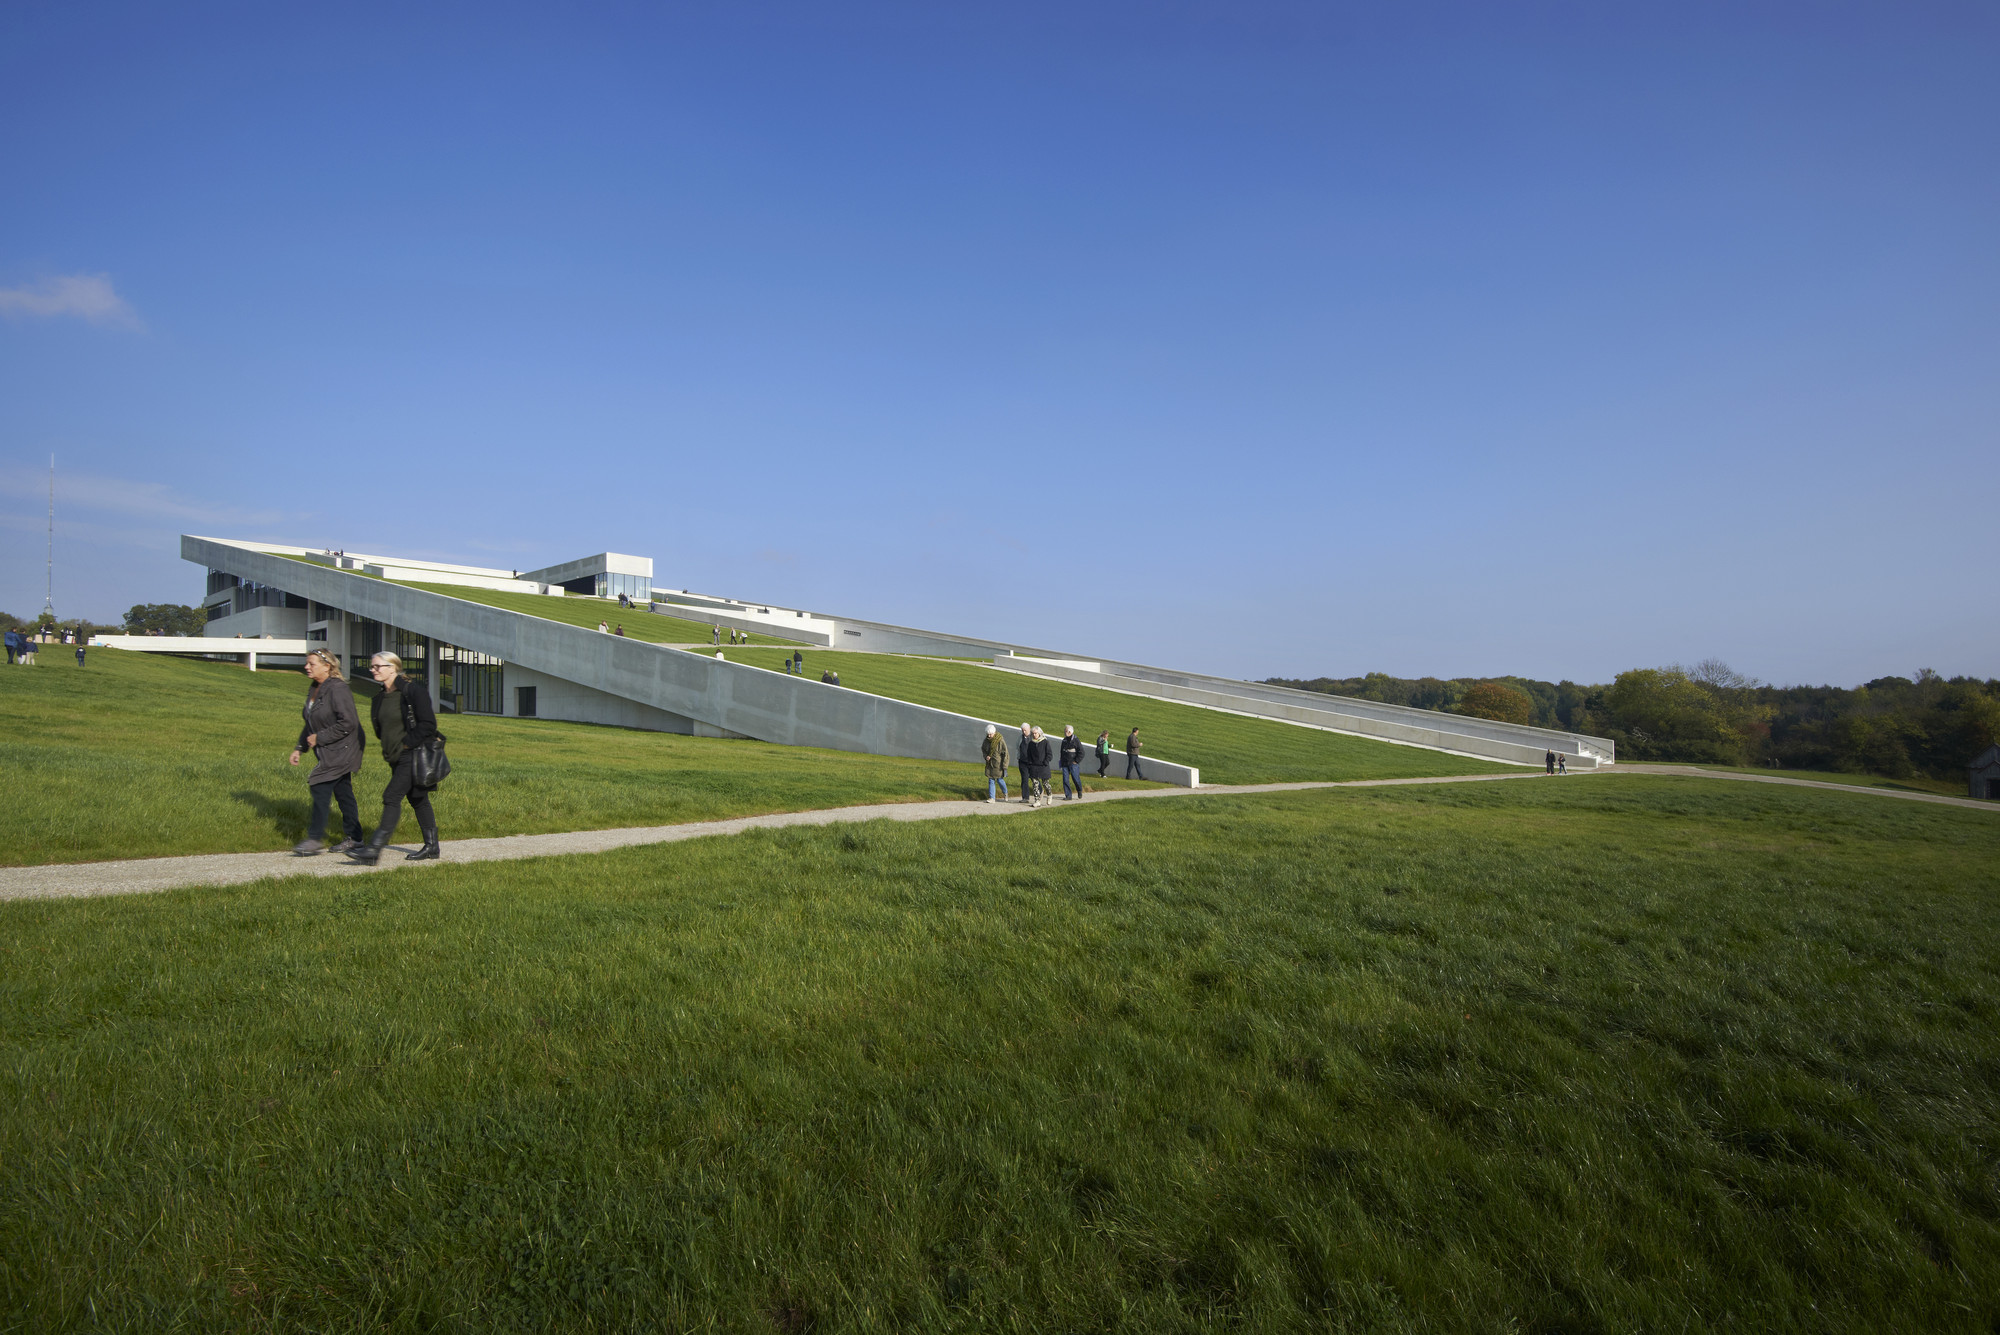 2015 Civic Trust Award Winners Announced, 2015 Civic Trust Award Winner: Moesgaard Museum / Henning Larsen Architects